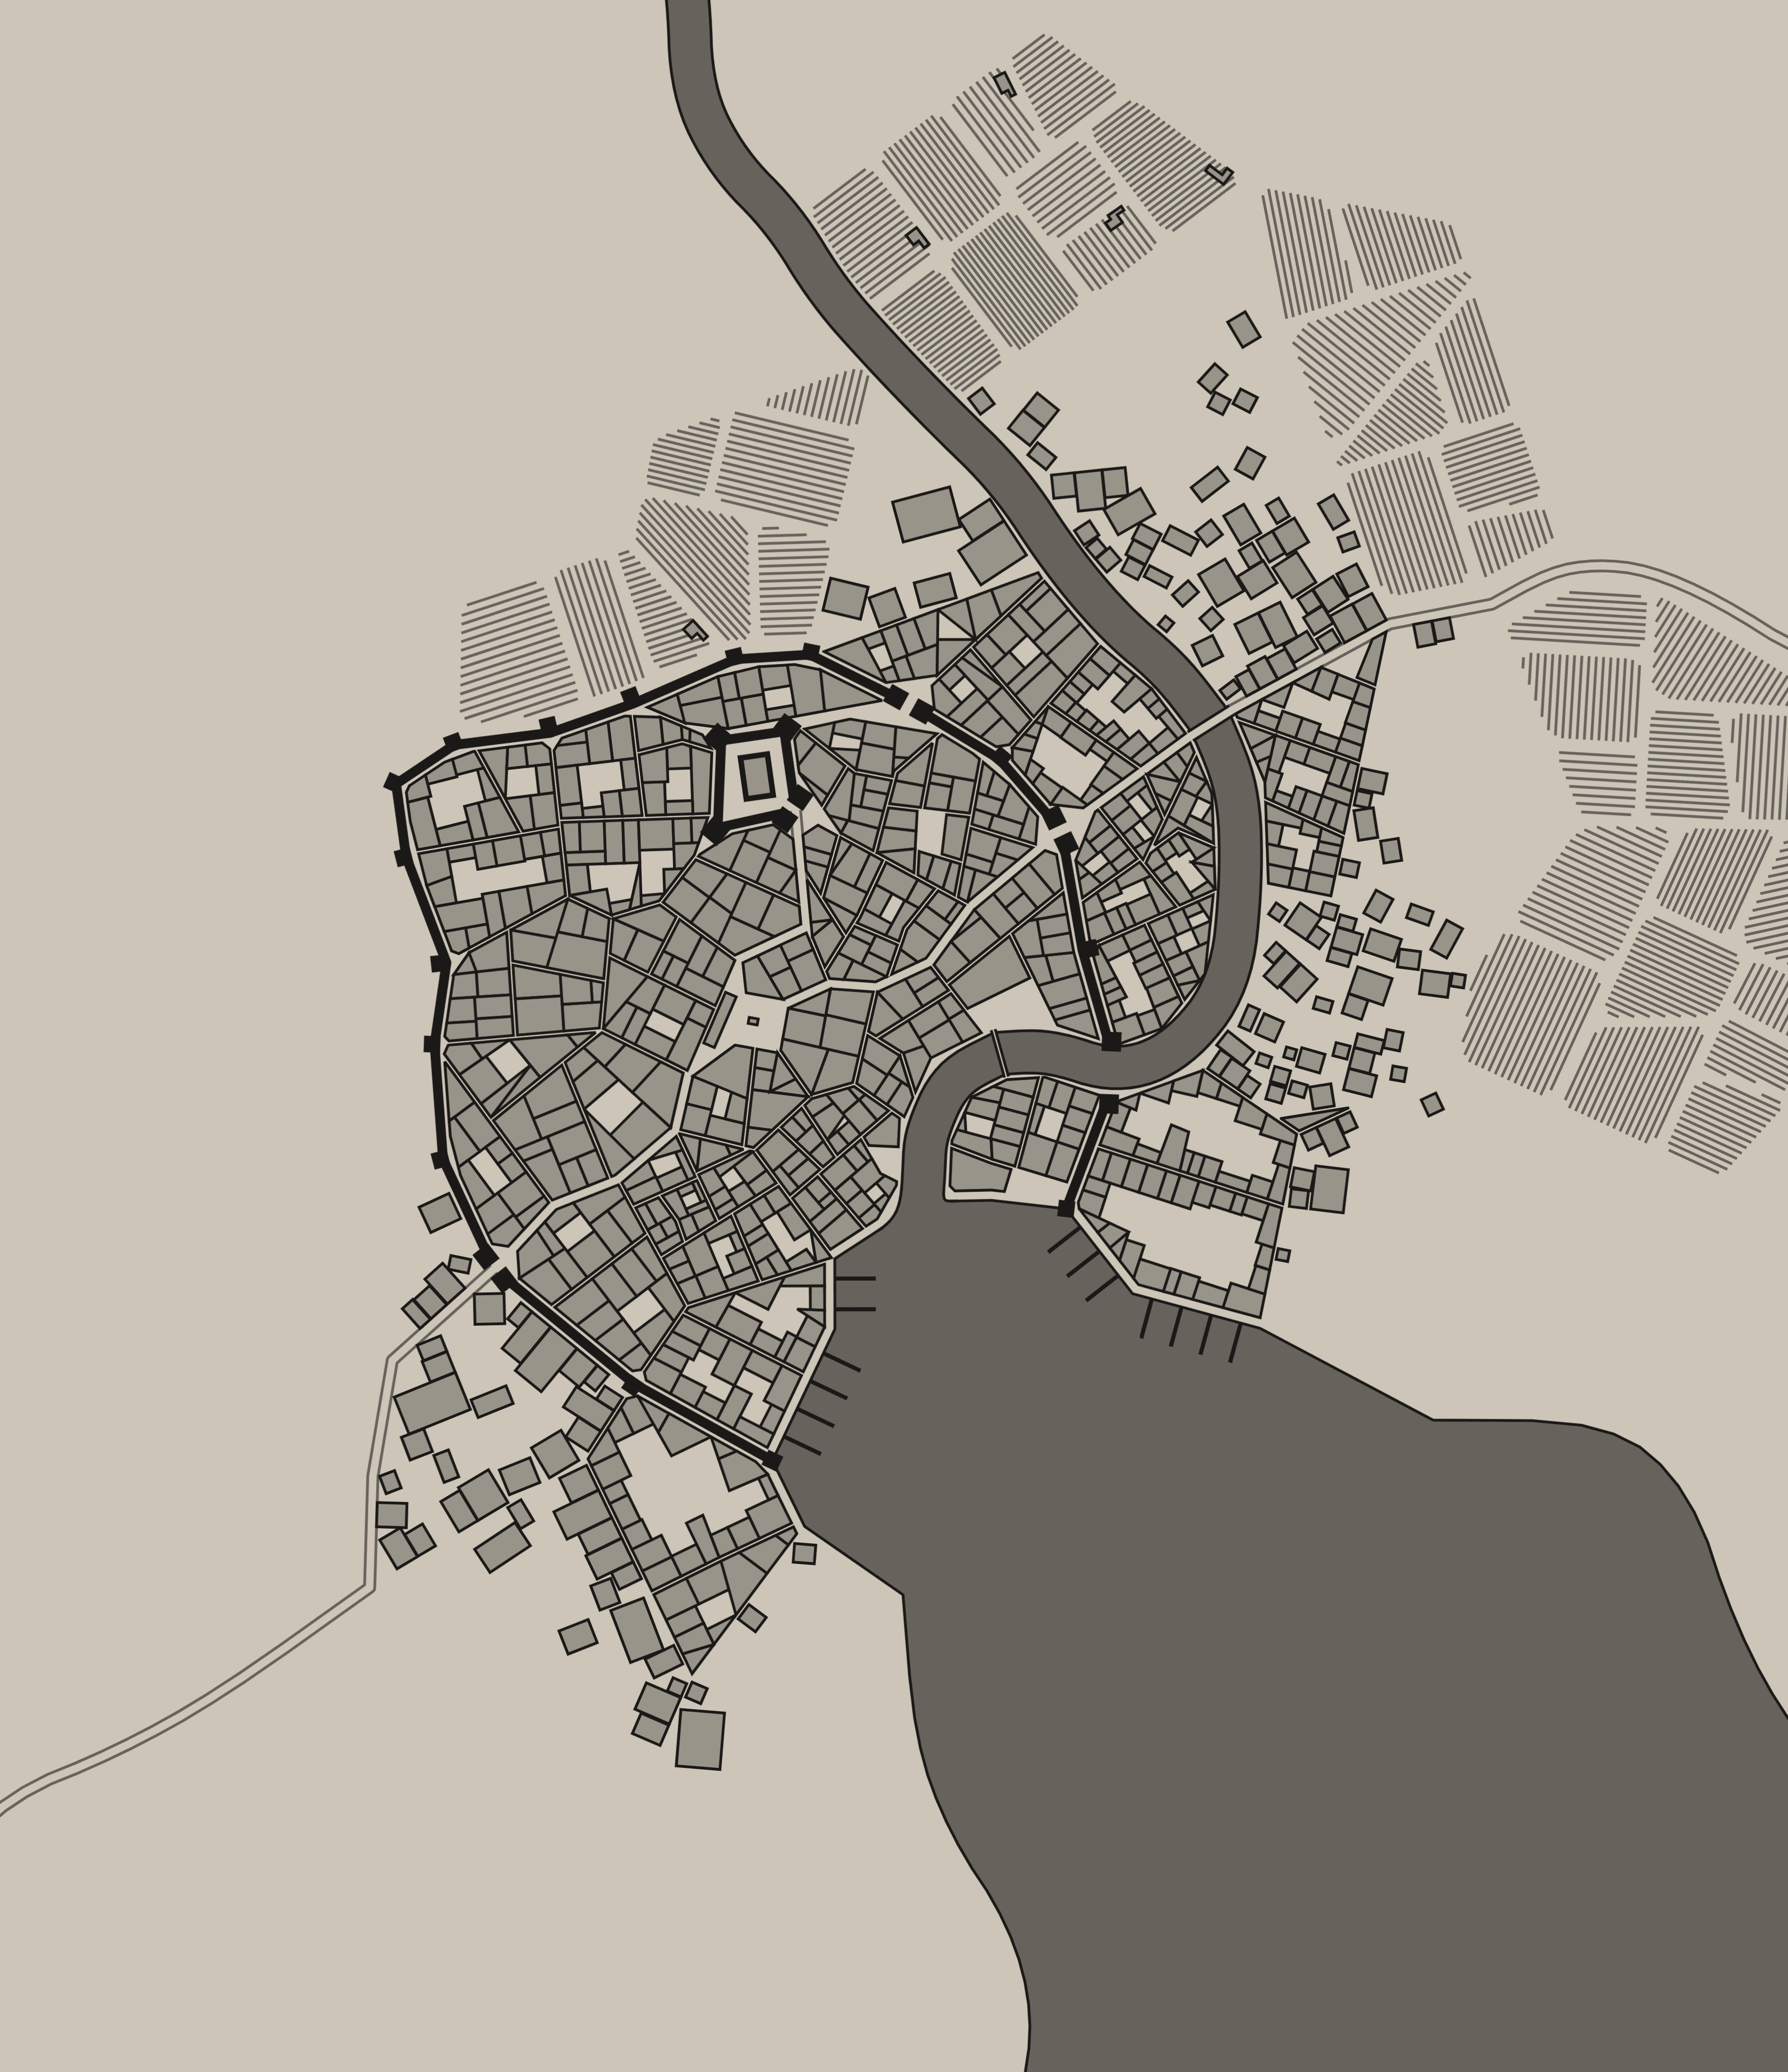 foxcliff_town.png